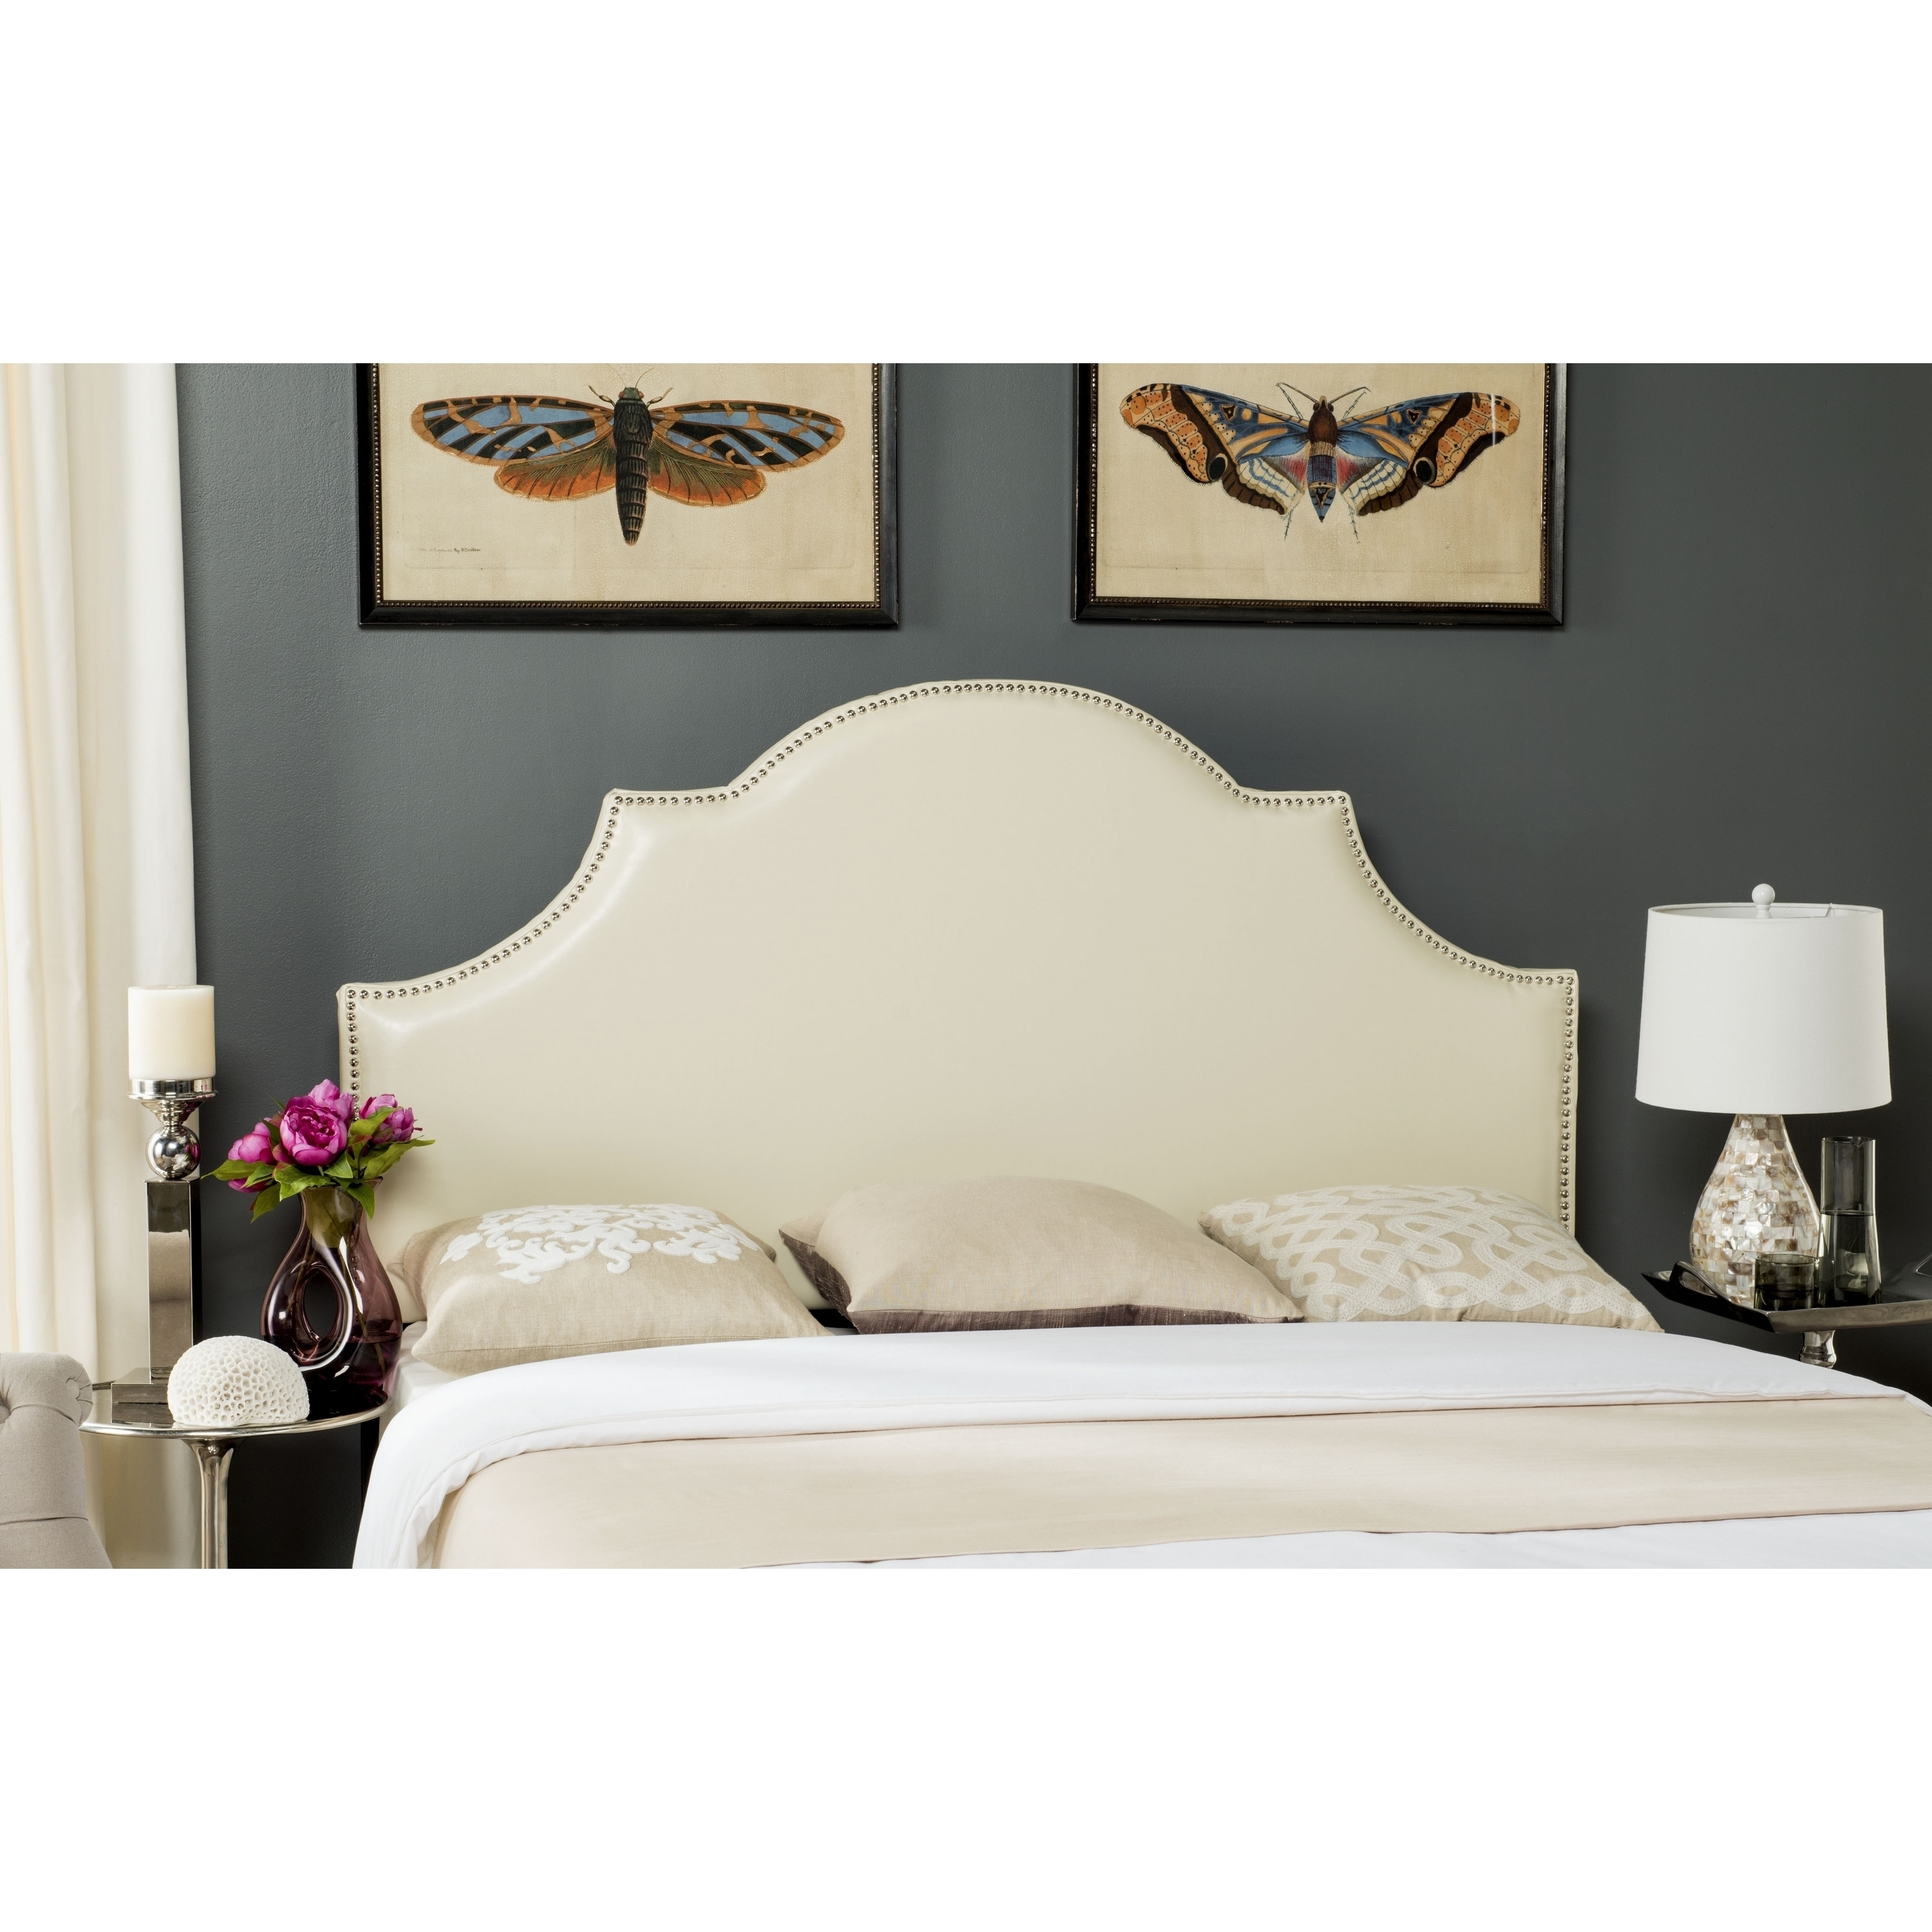 Safavieh Hallmar Off White Leather Upholstered Arched Headboard Silver Nailhead Full